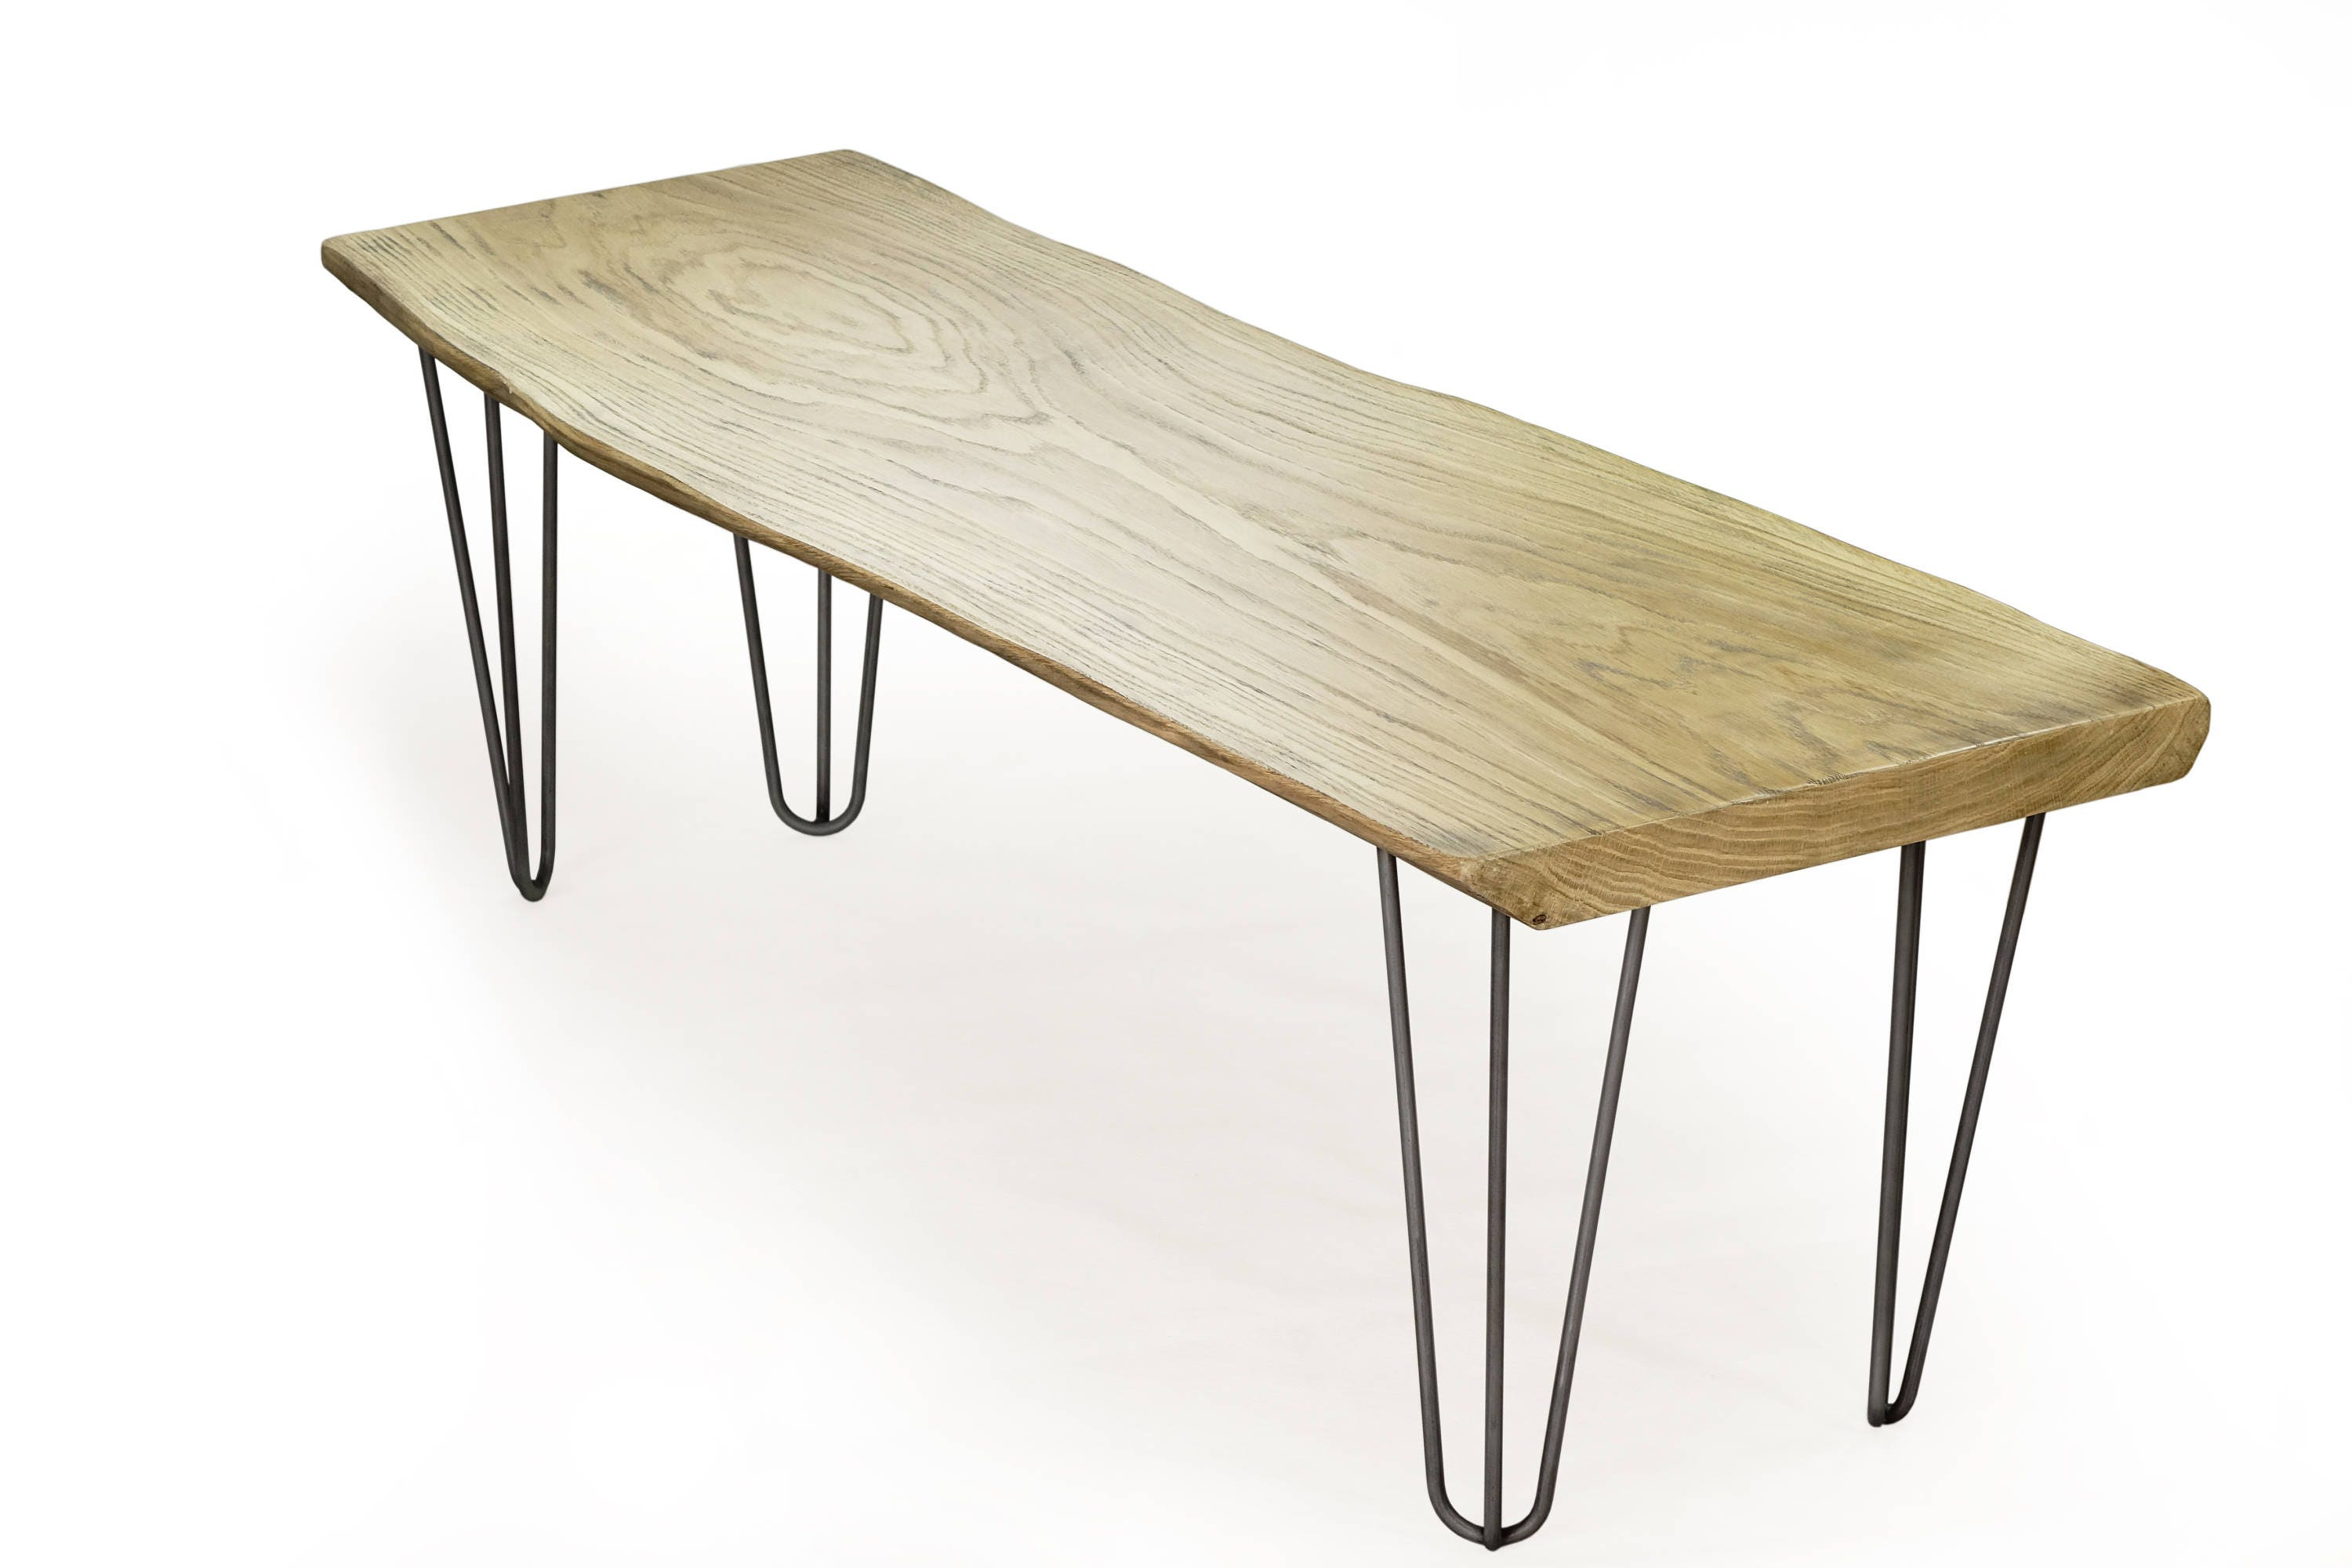 weathered oak table hairpin coffee table. Black Bedroom Furniture Sets. Home Design Ideas